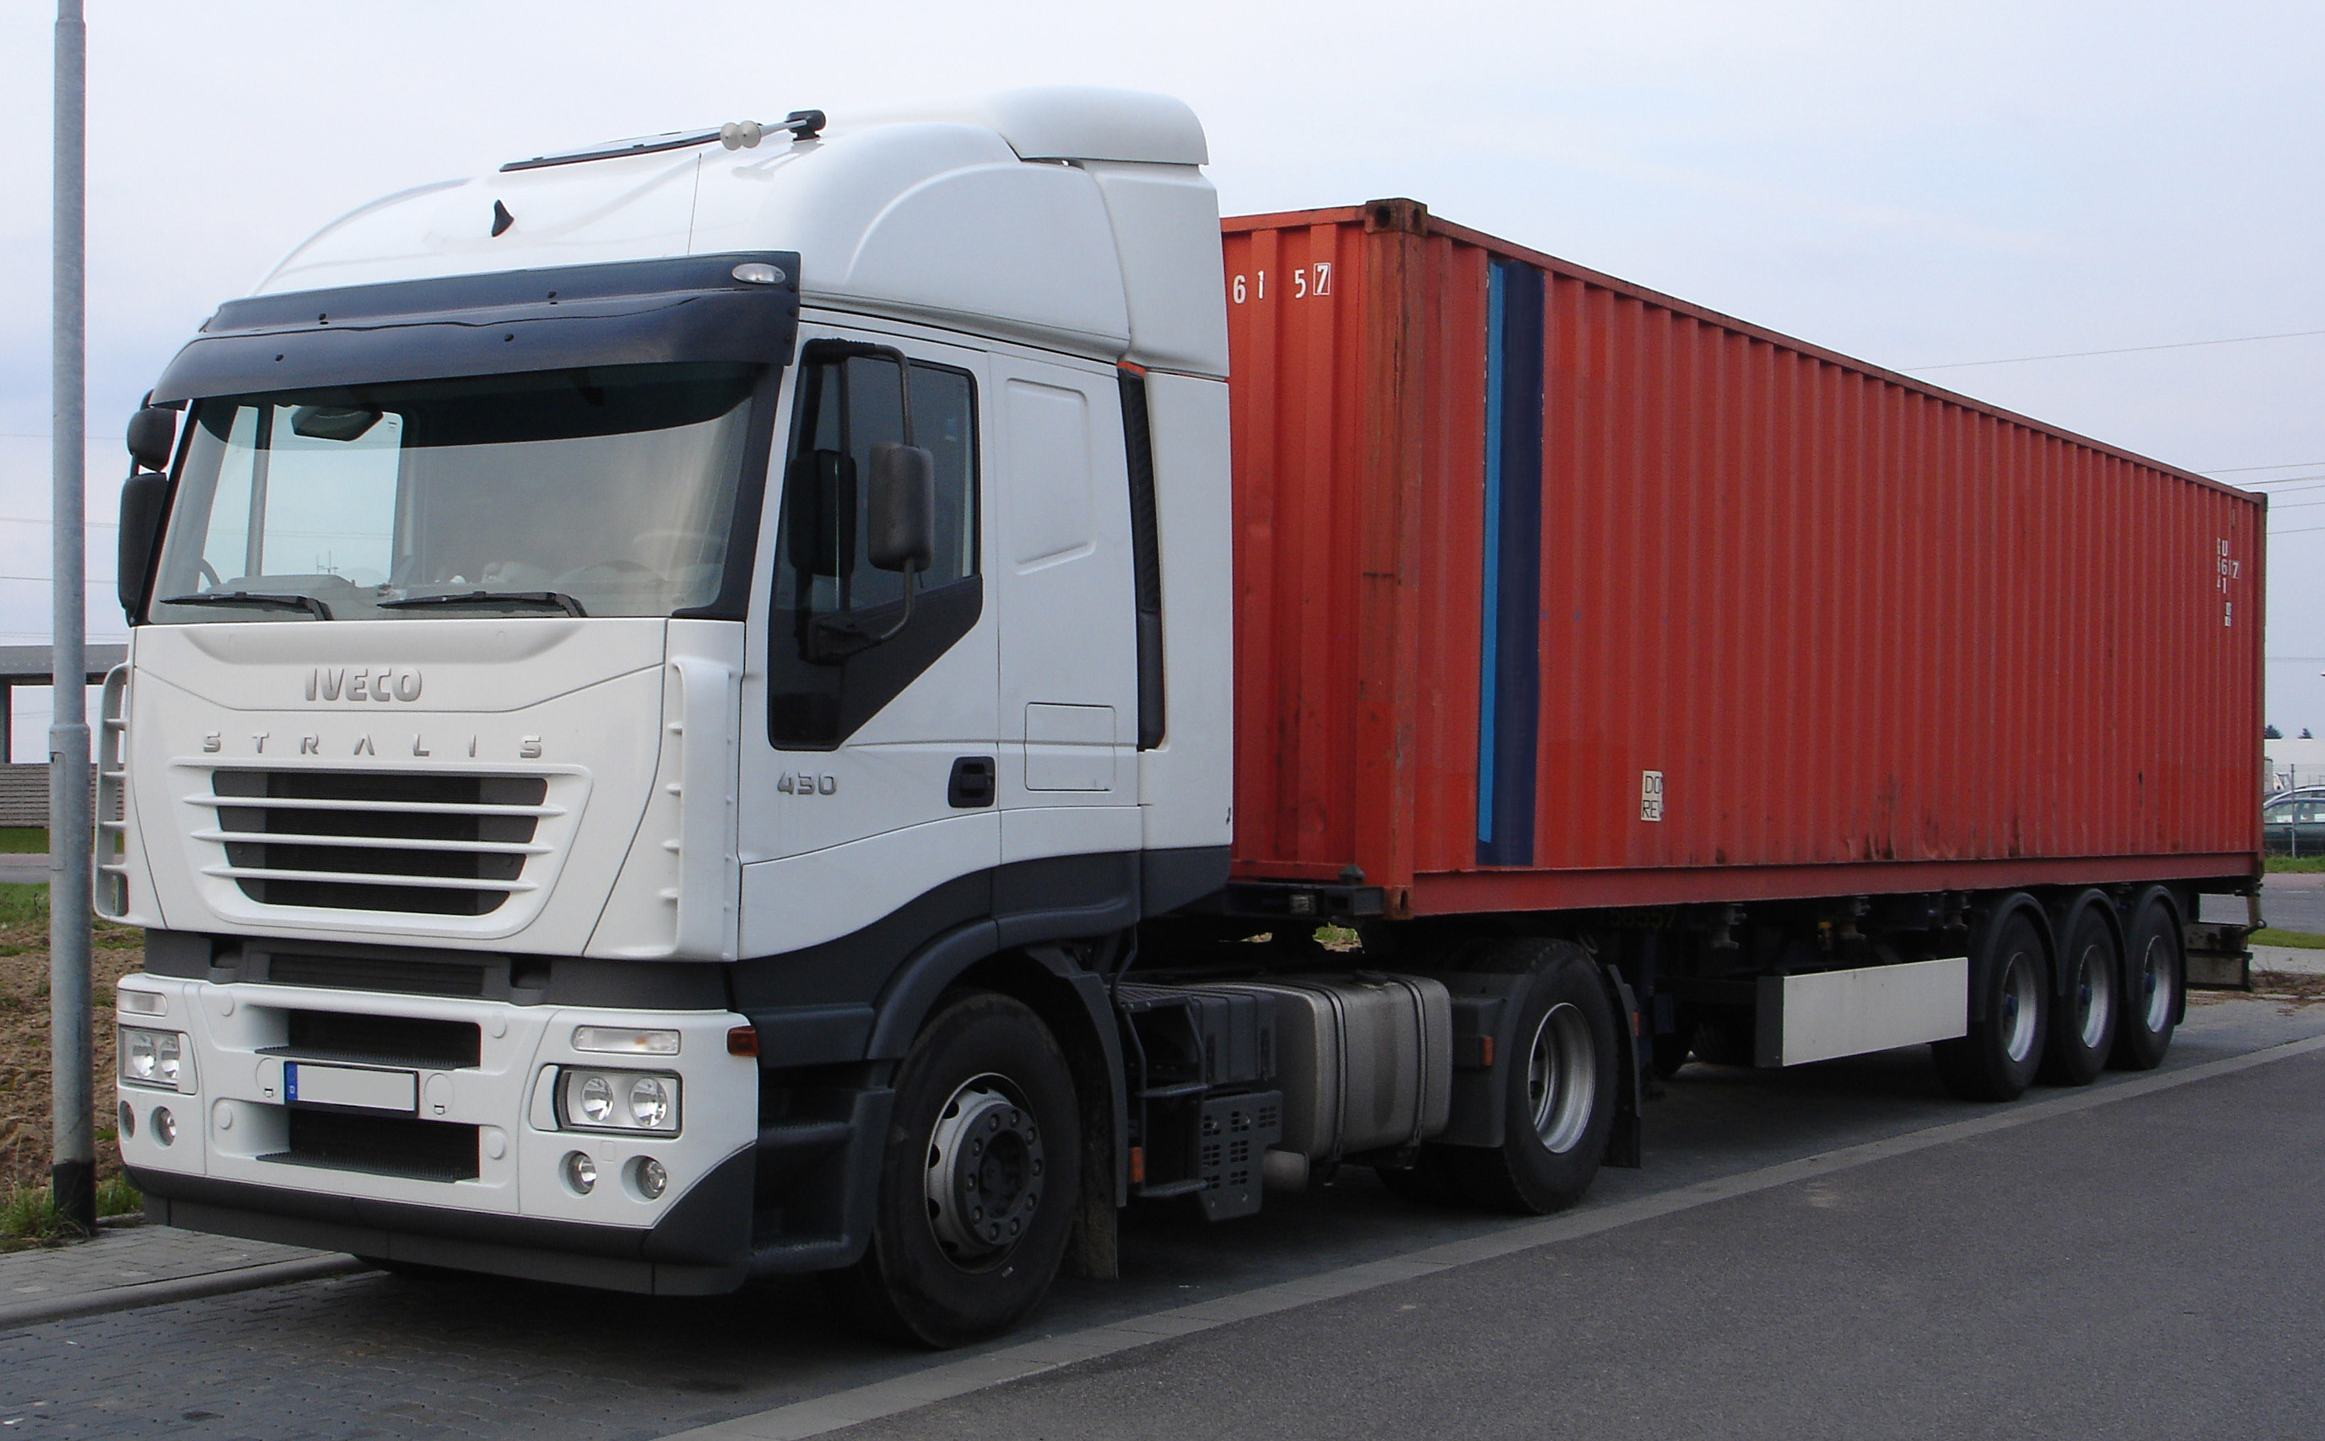 DateiIVECO Stralis AS430 Containersattelzugjpg – Wikipedia